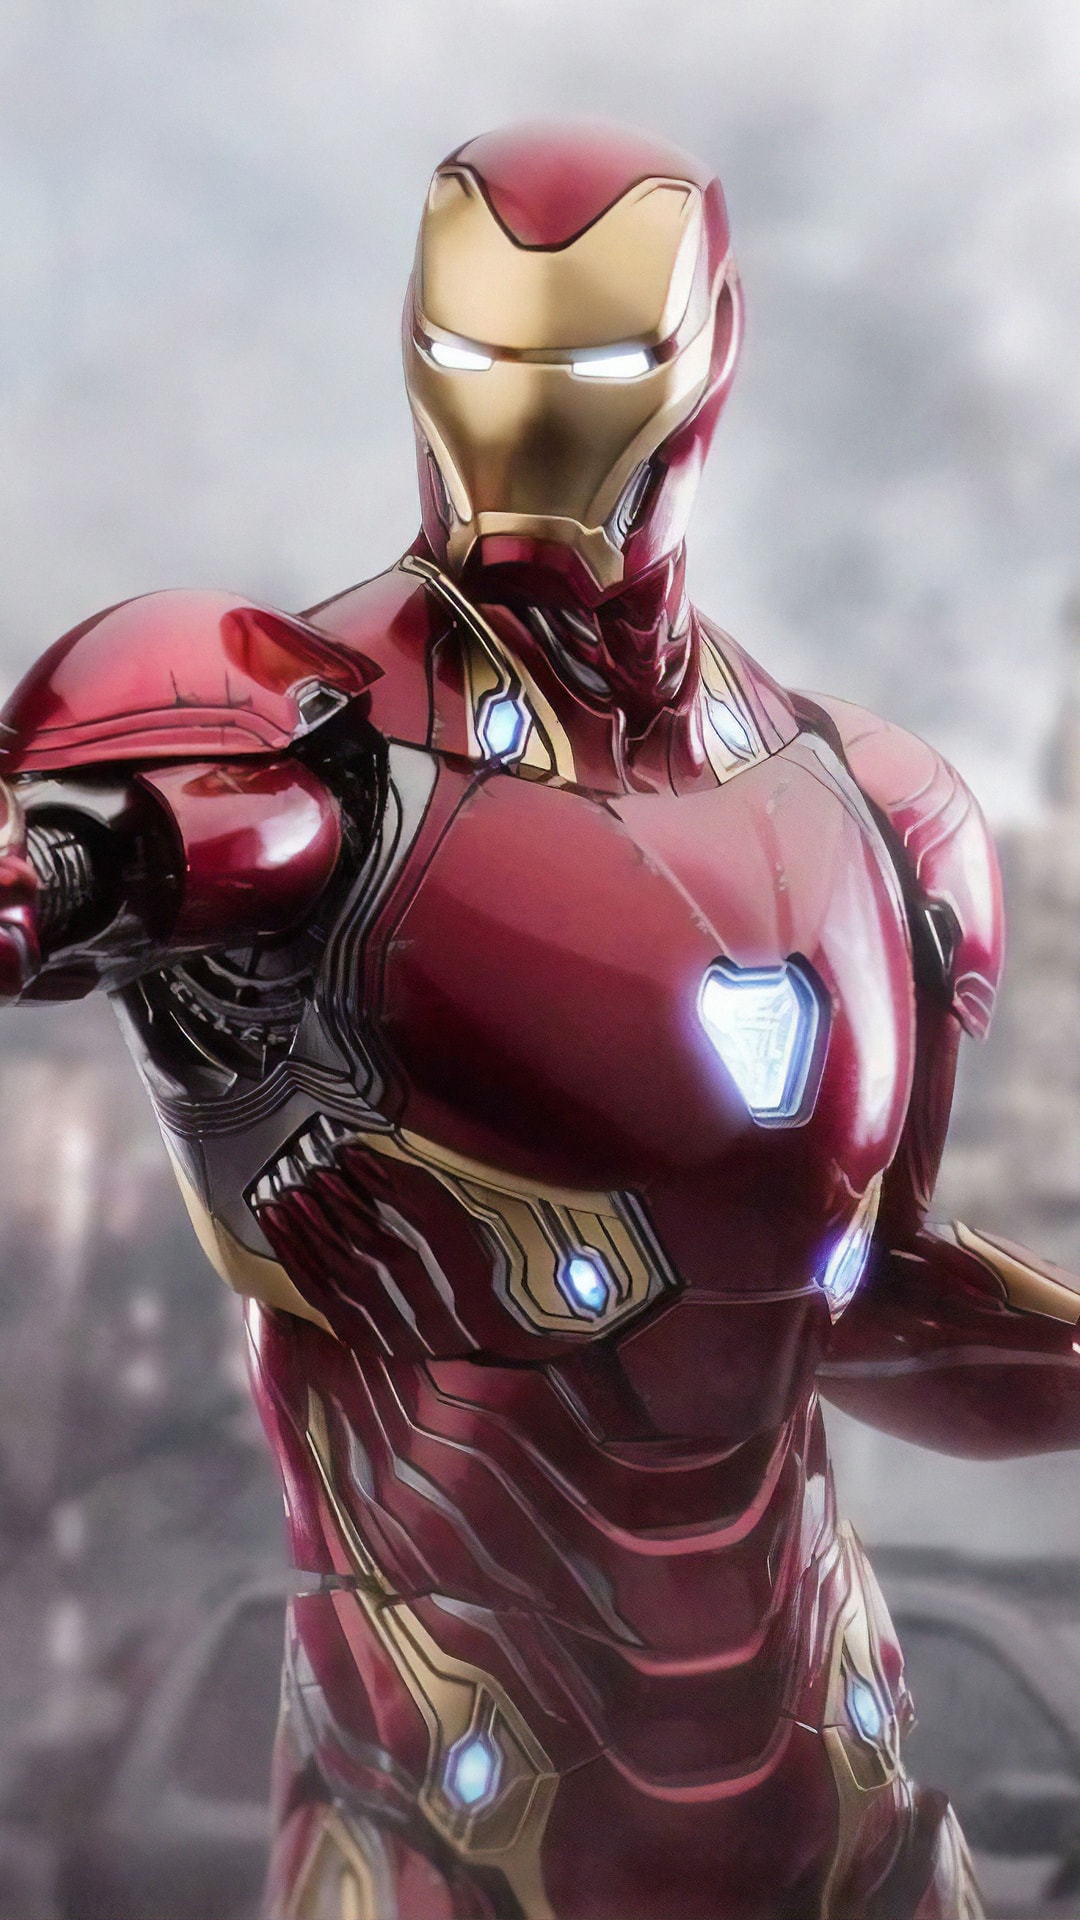 Iron Man Endgame - Best htc one wallpapers, free and easy ...